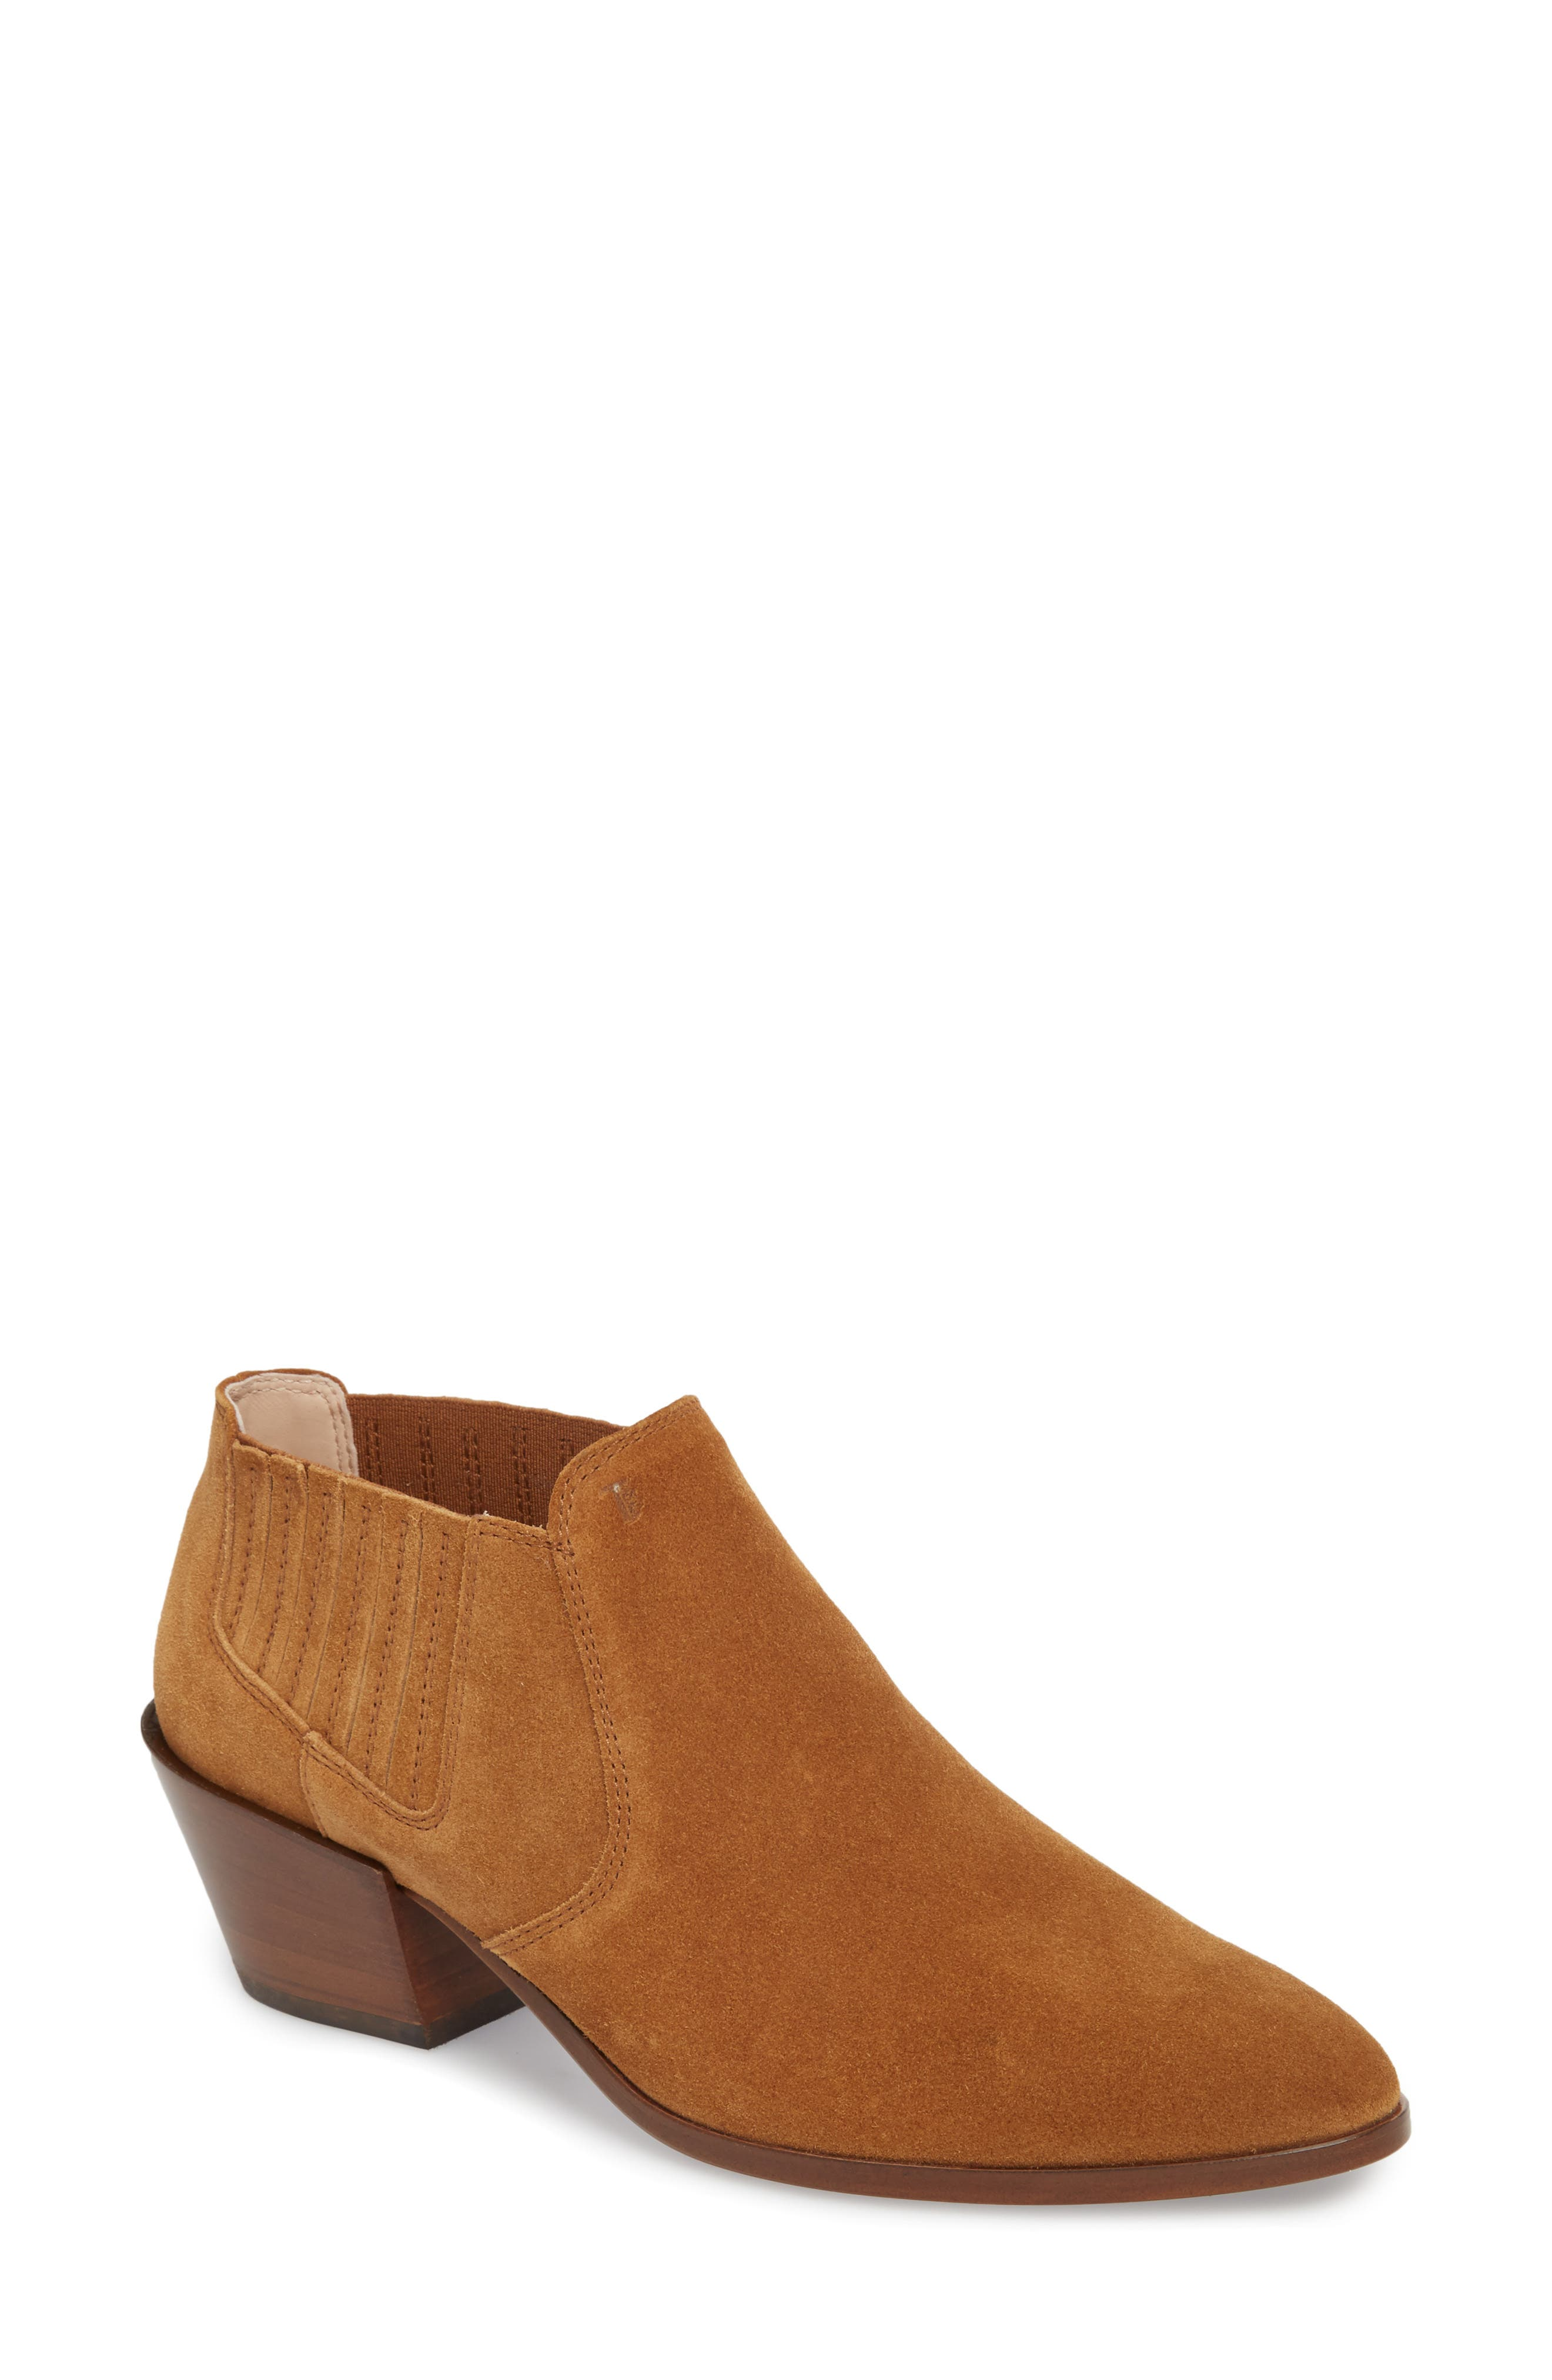 TOD'S Tex Ankle Boot, Main, color, 200